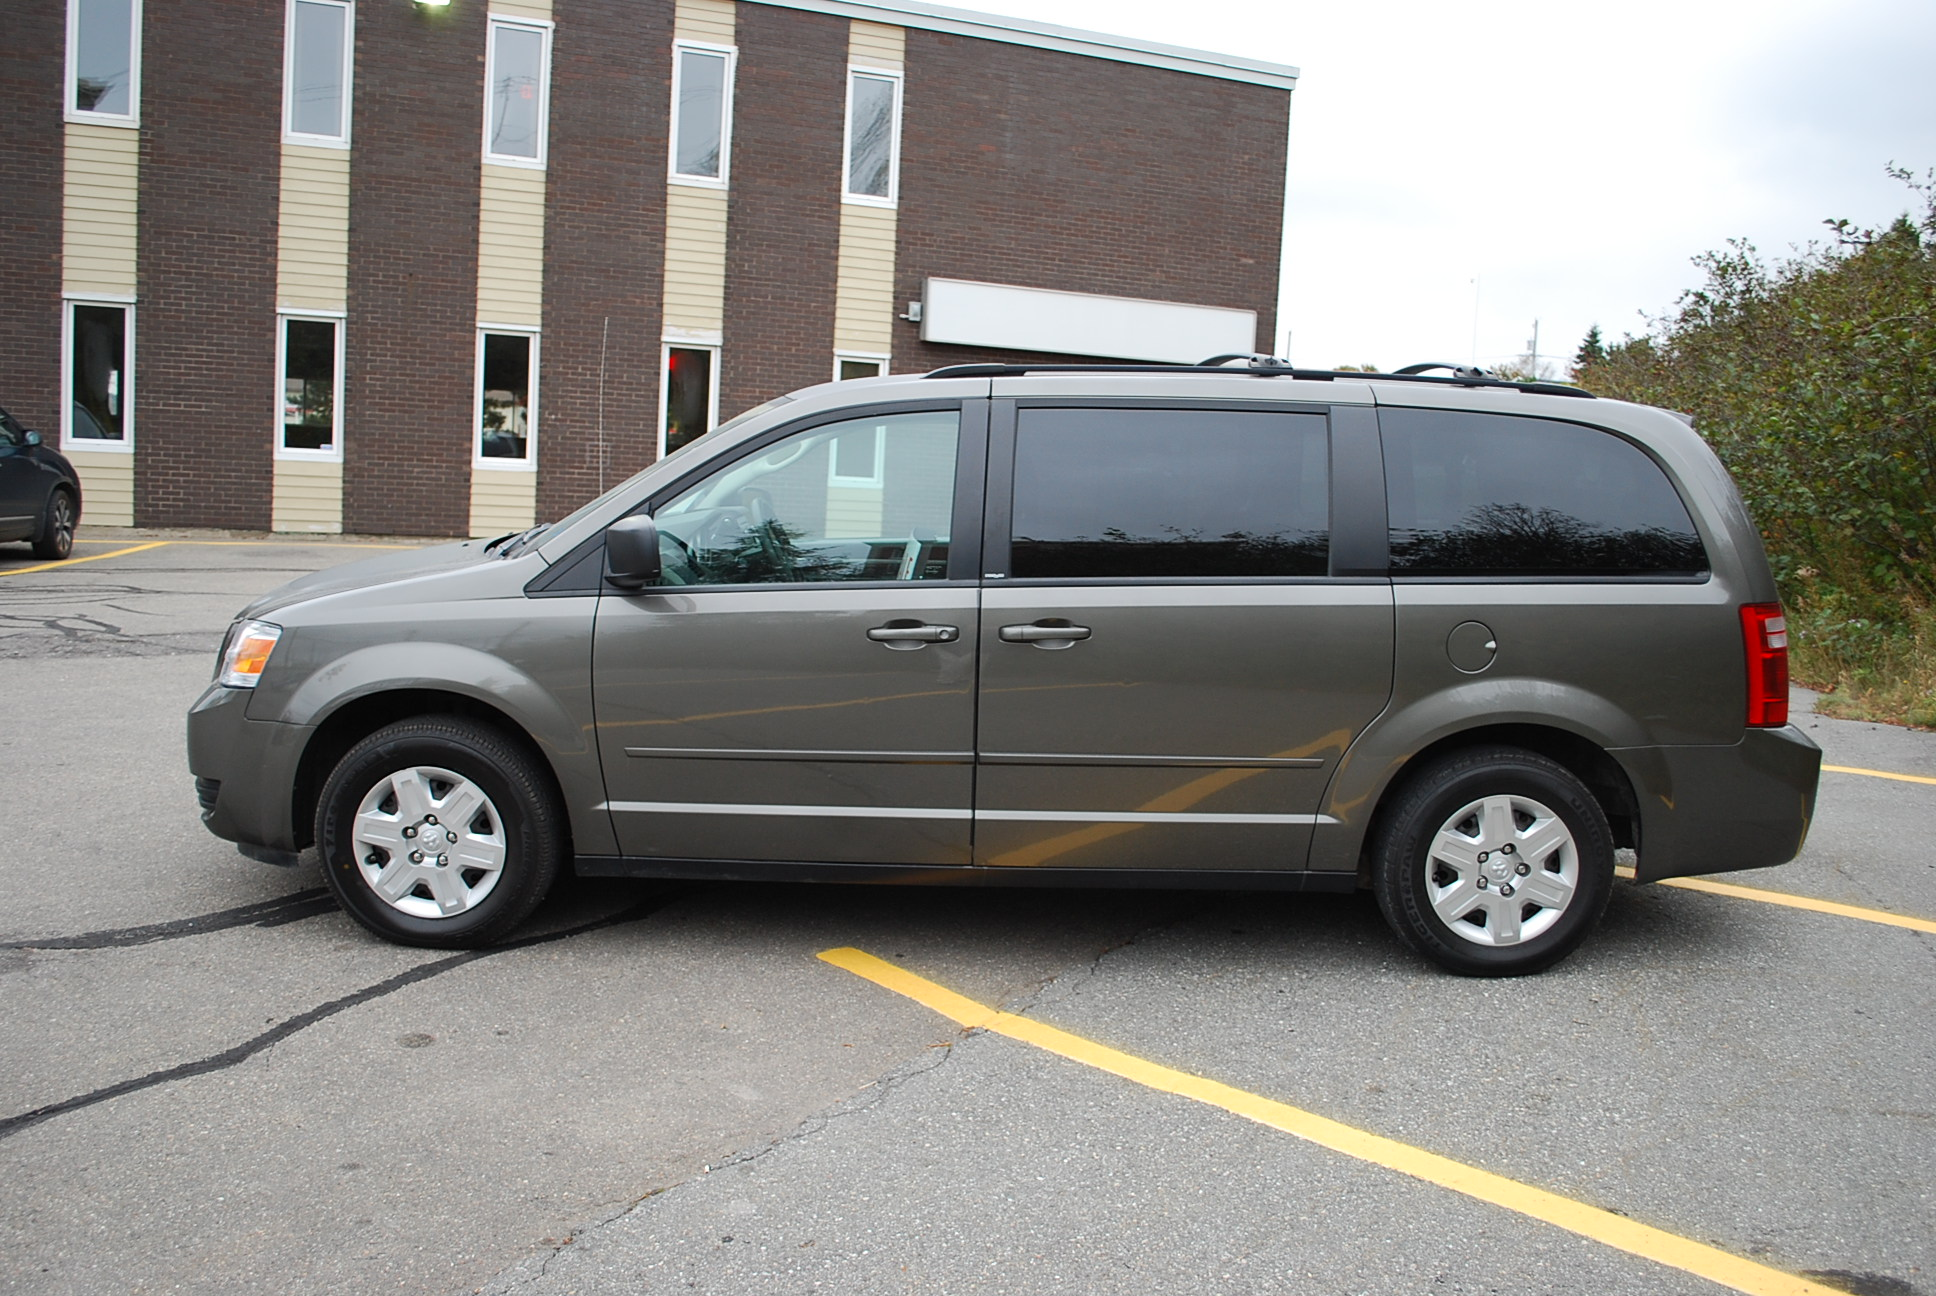 used 2010 dodge grand caravan se for sale in saint john nb. Cars Review. Best American Auto & Cars Review